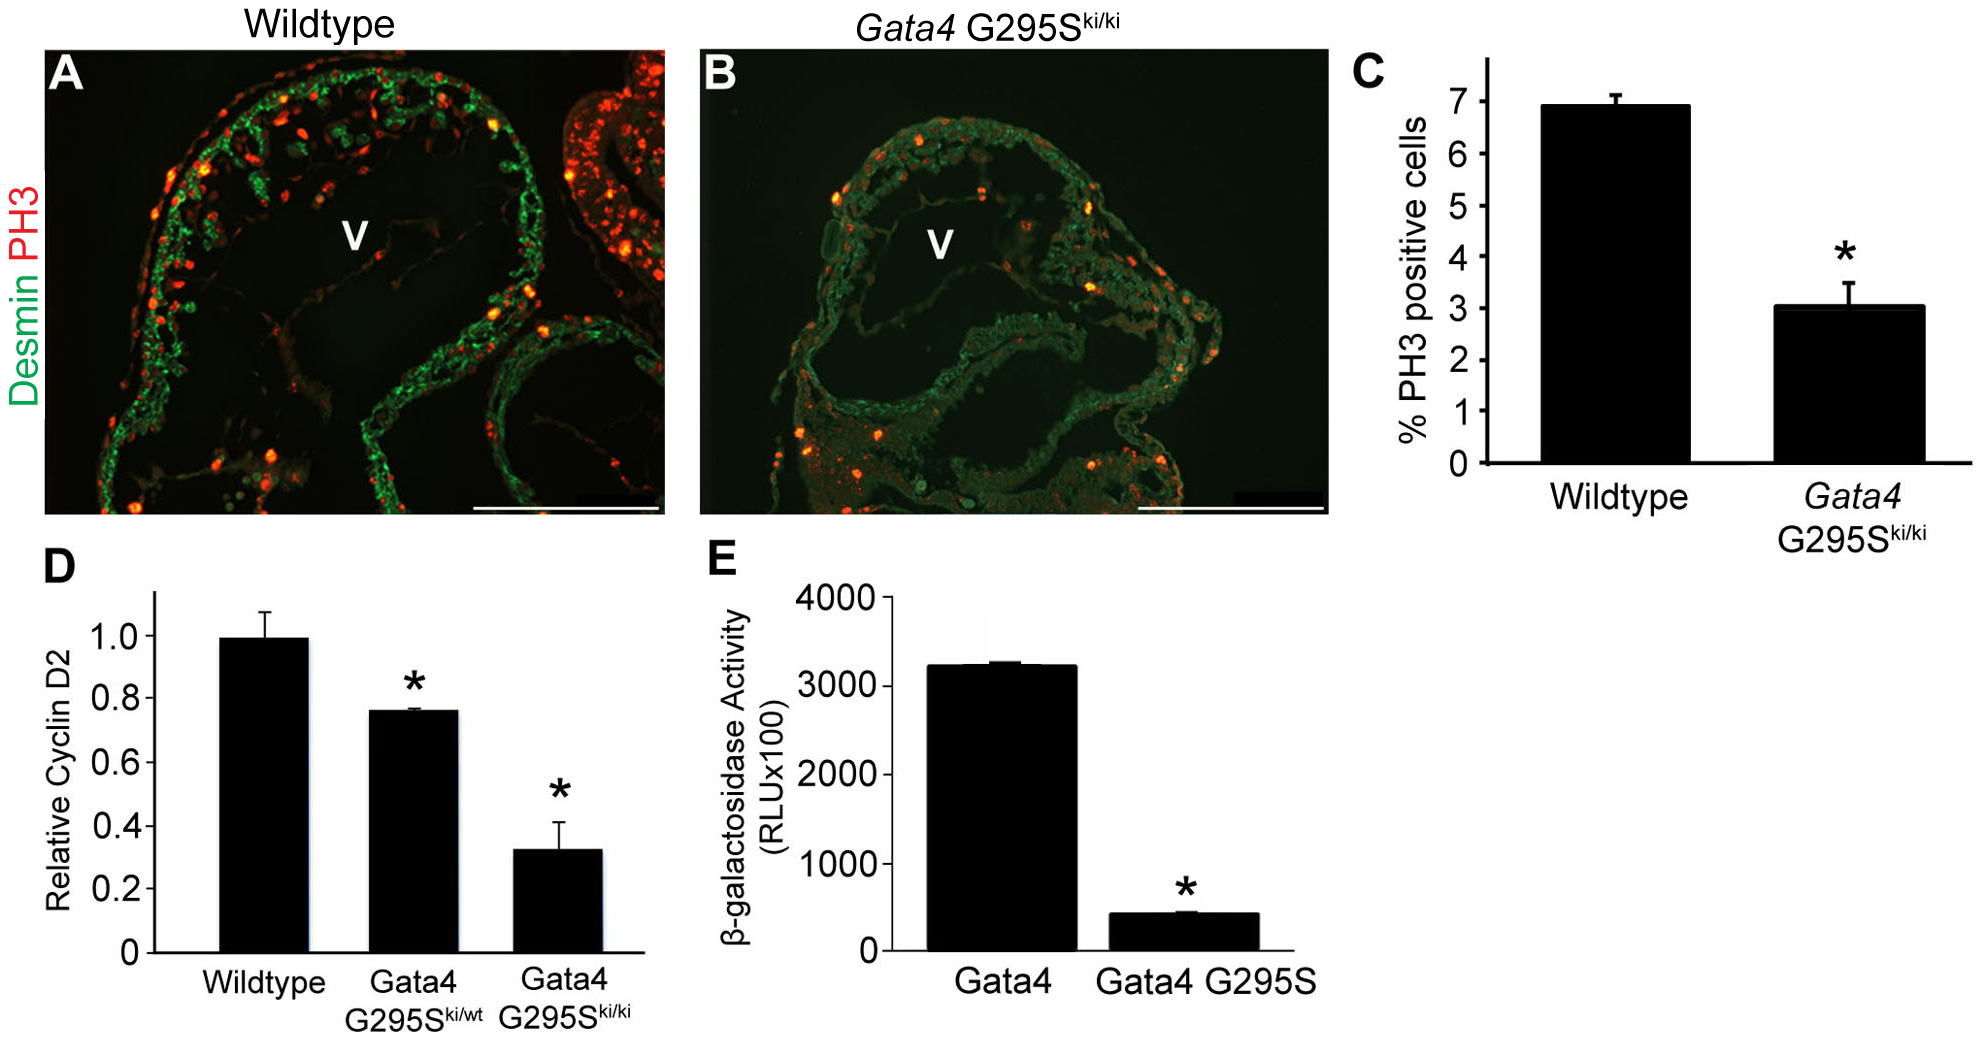 G295S mutation in <i>Gata4</i> results in cardiomyocyte proliferation defects.